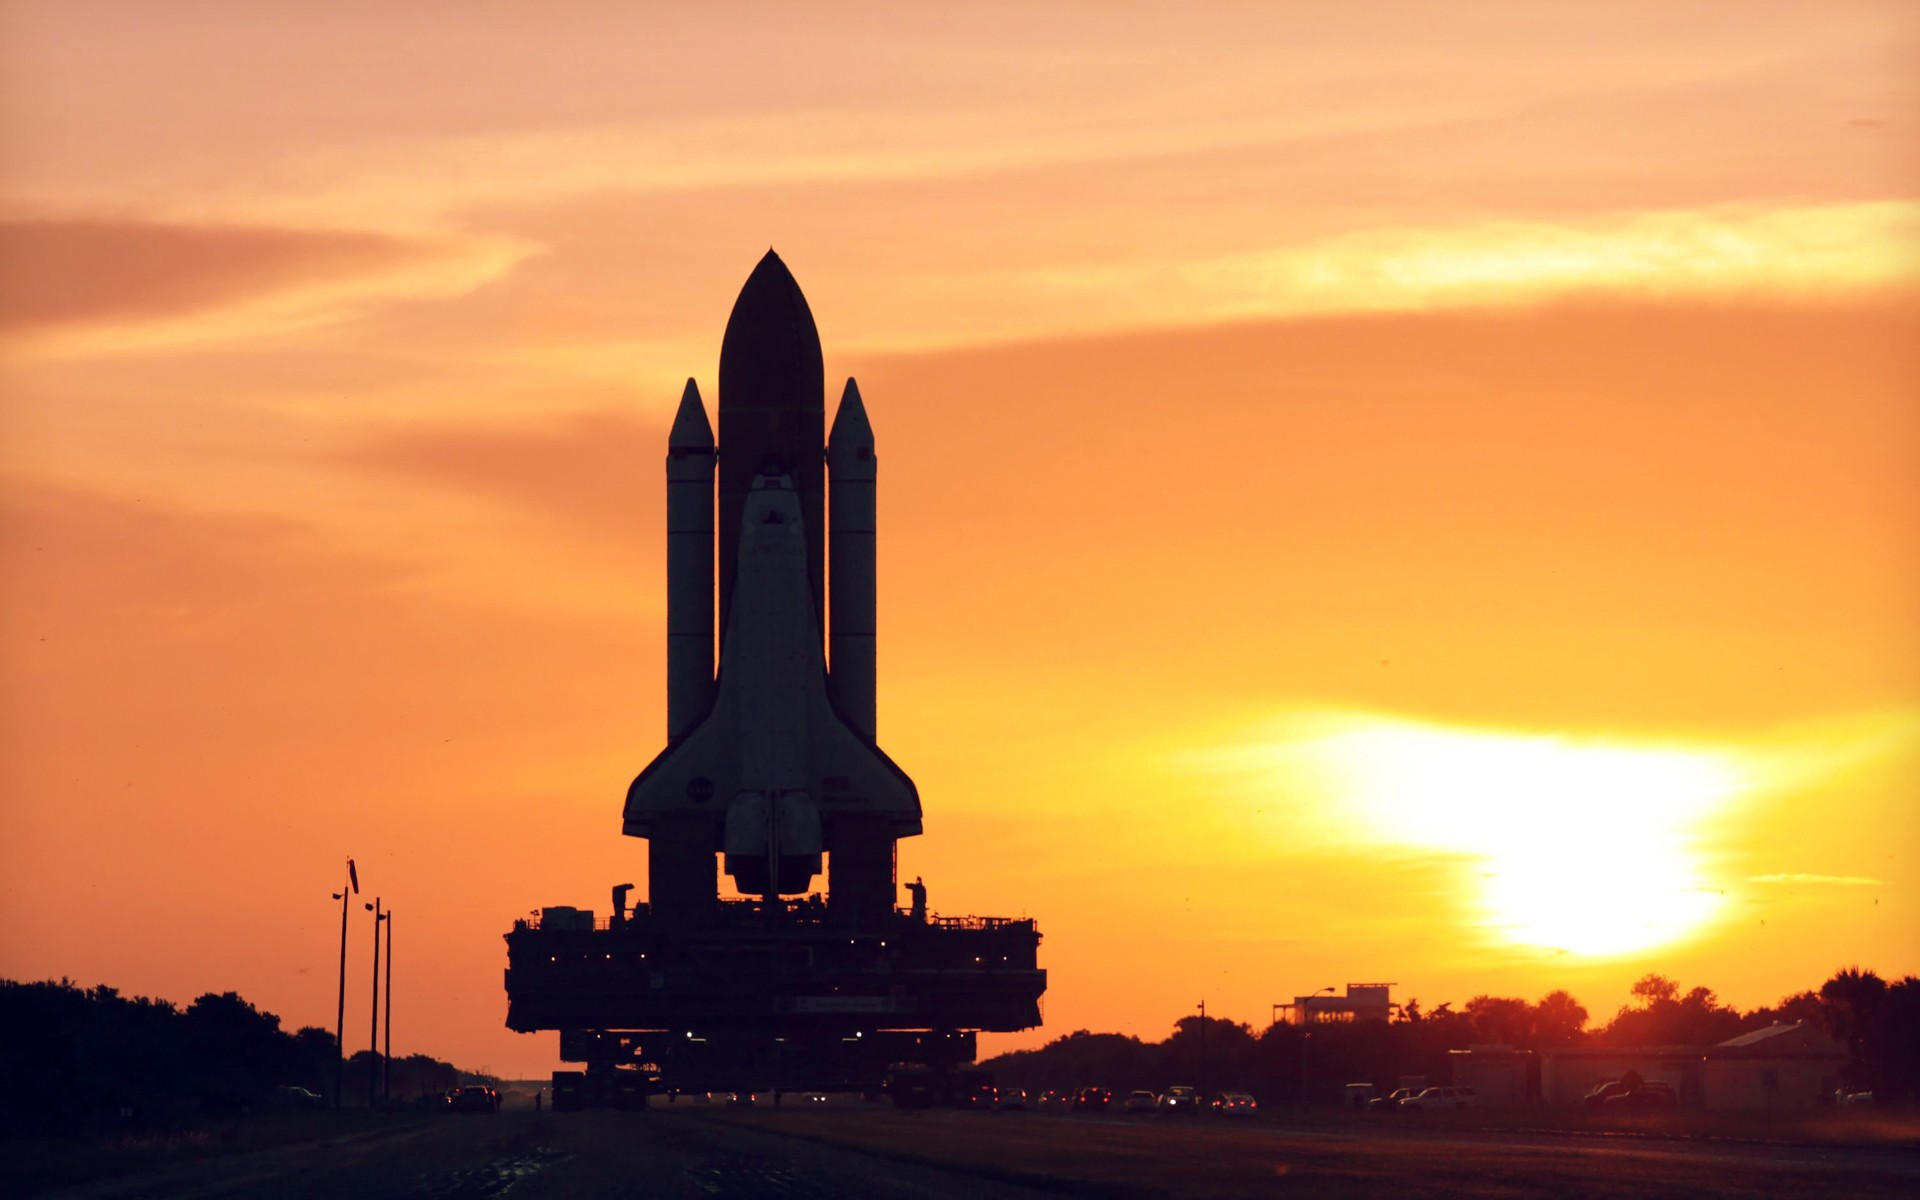 Space shuttle discovery hd wallpaper background image - Nasa space shuttle wallpaper ...